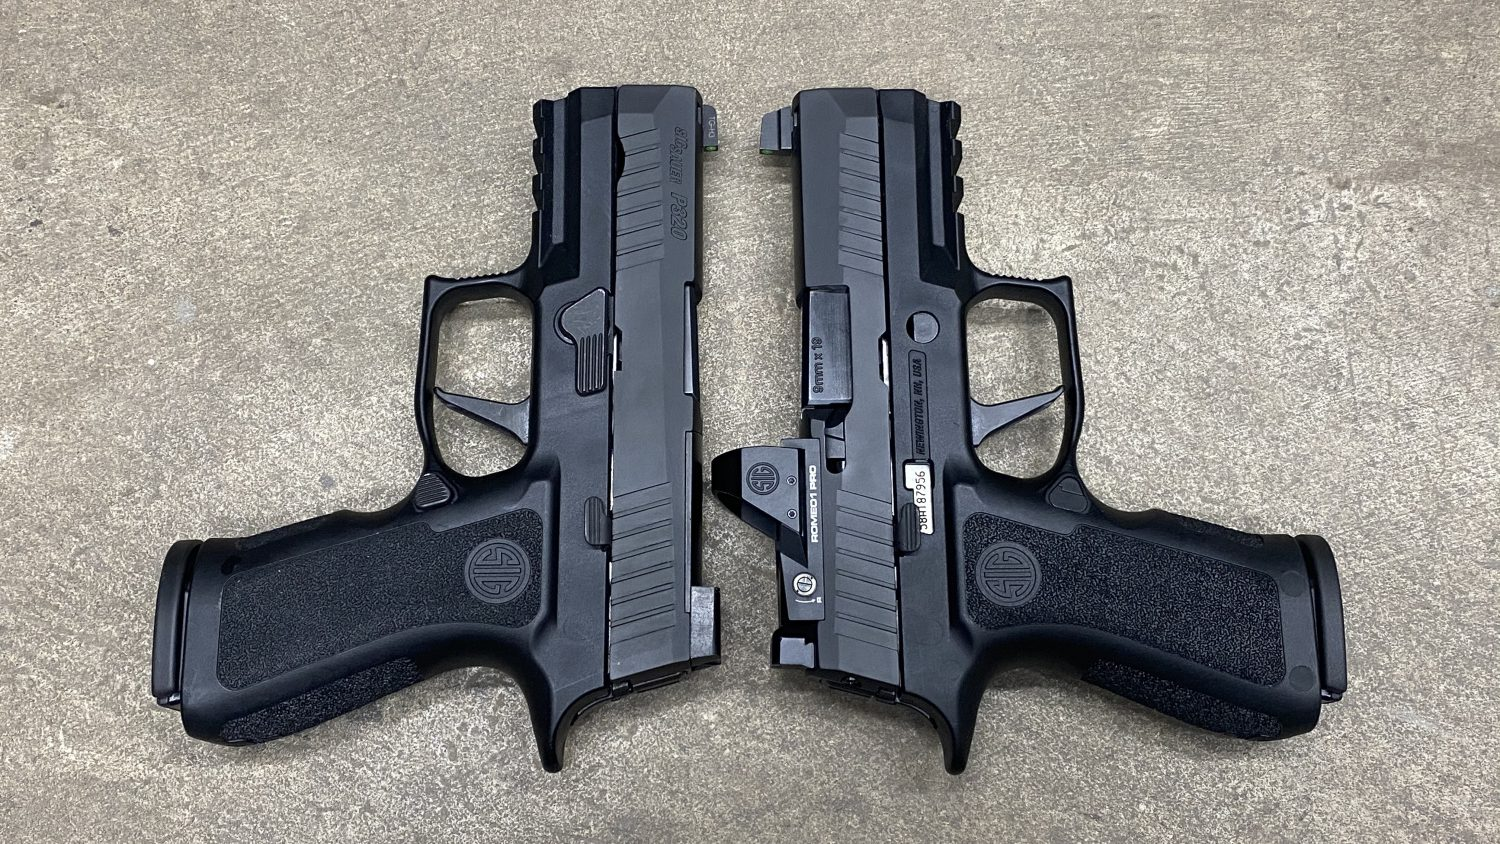 SIG Sauer RXP XCompact vs XCompact - What's The Difference? -